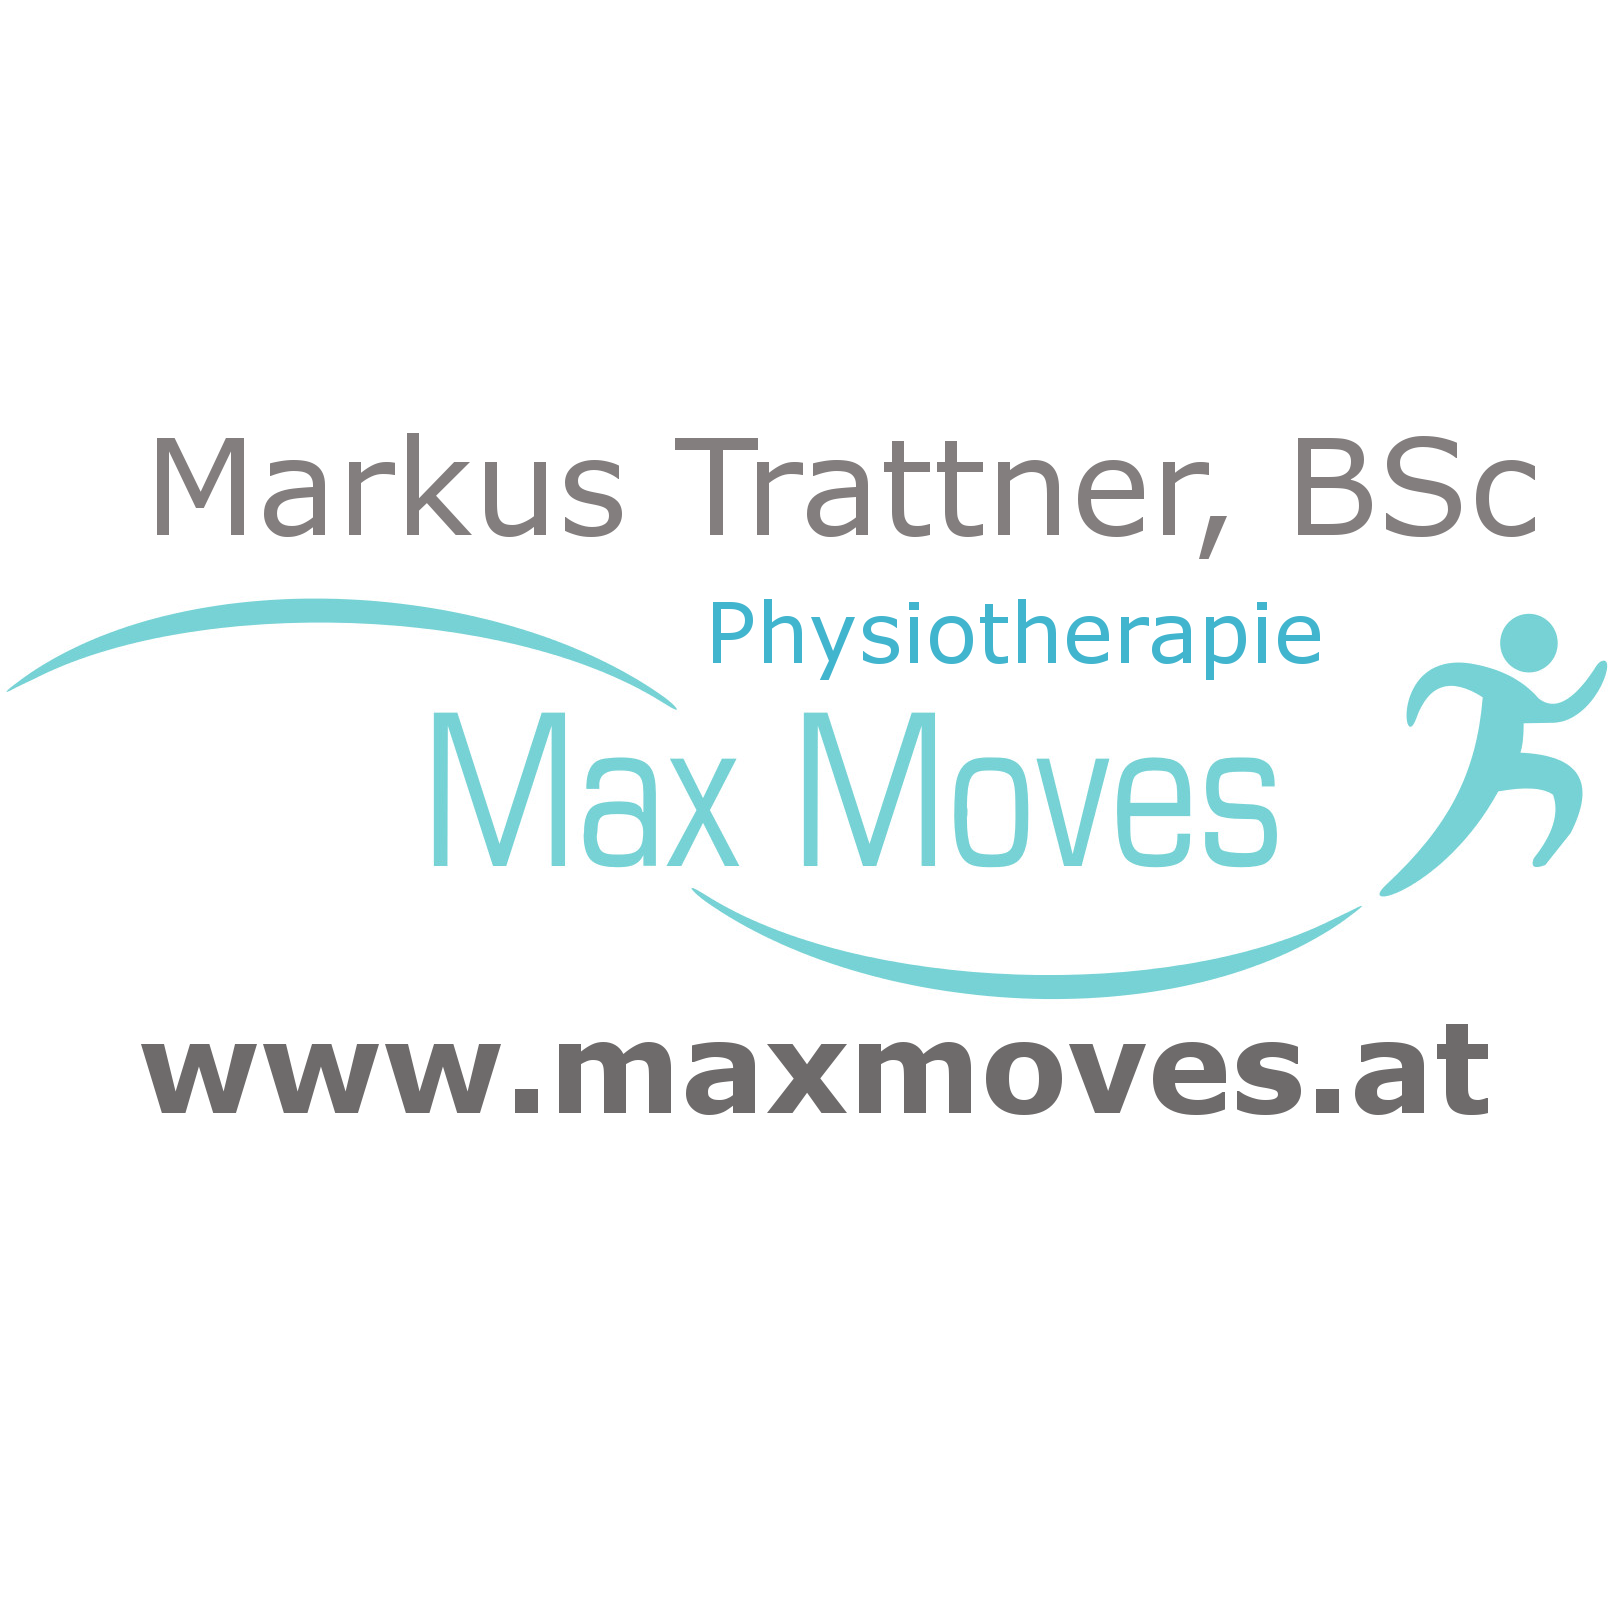 Max Moves